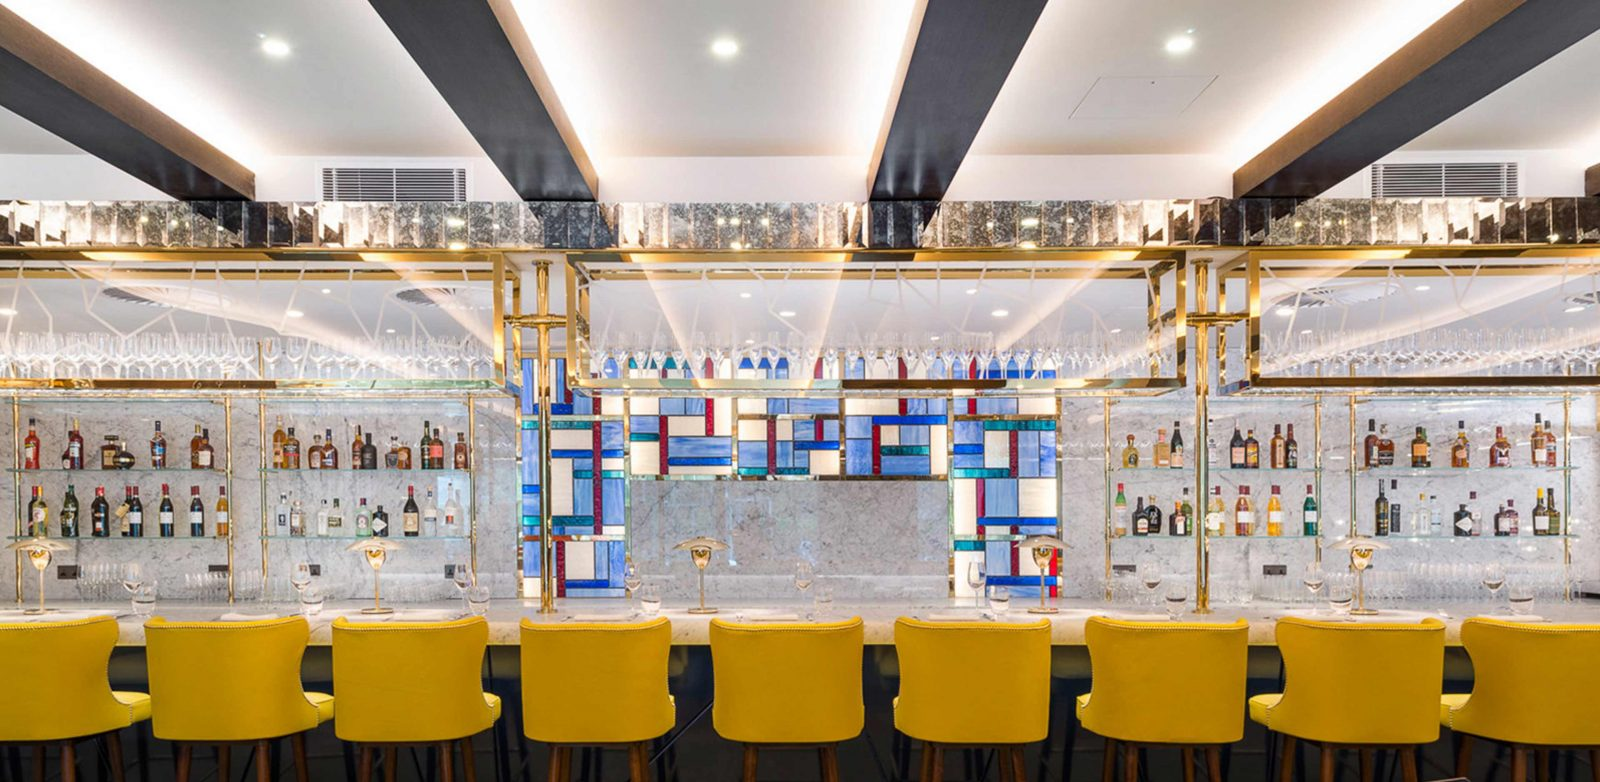 Lighting Solution Stylish Classic Restaurant Bar Mondrian Feature Yellow Seating Studio N